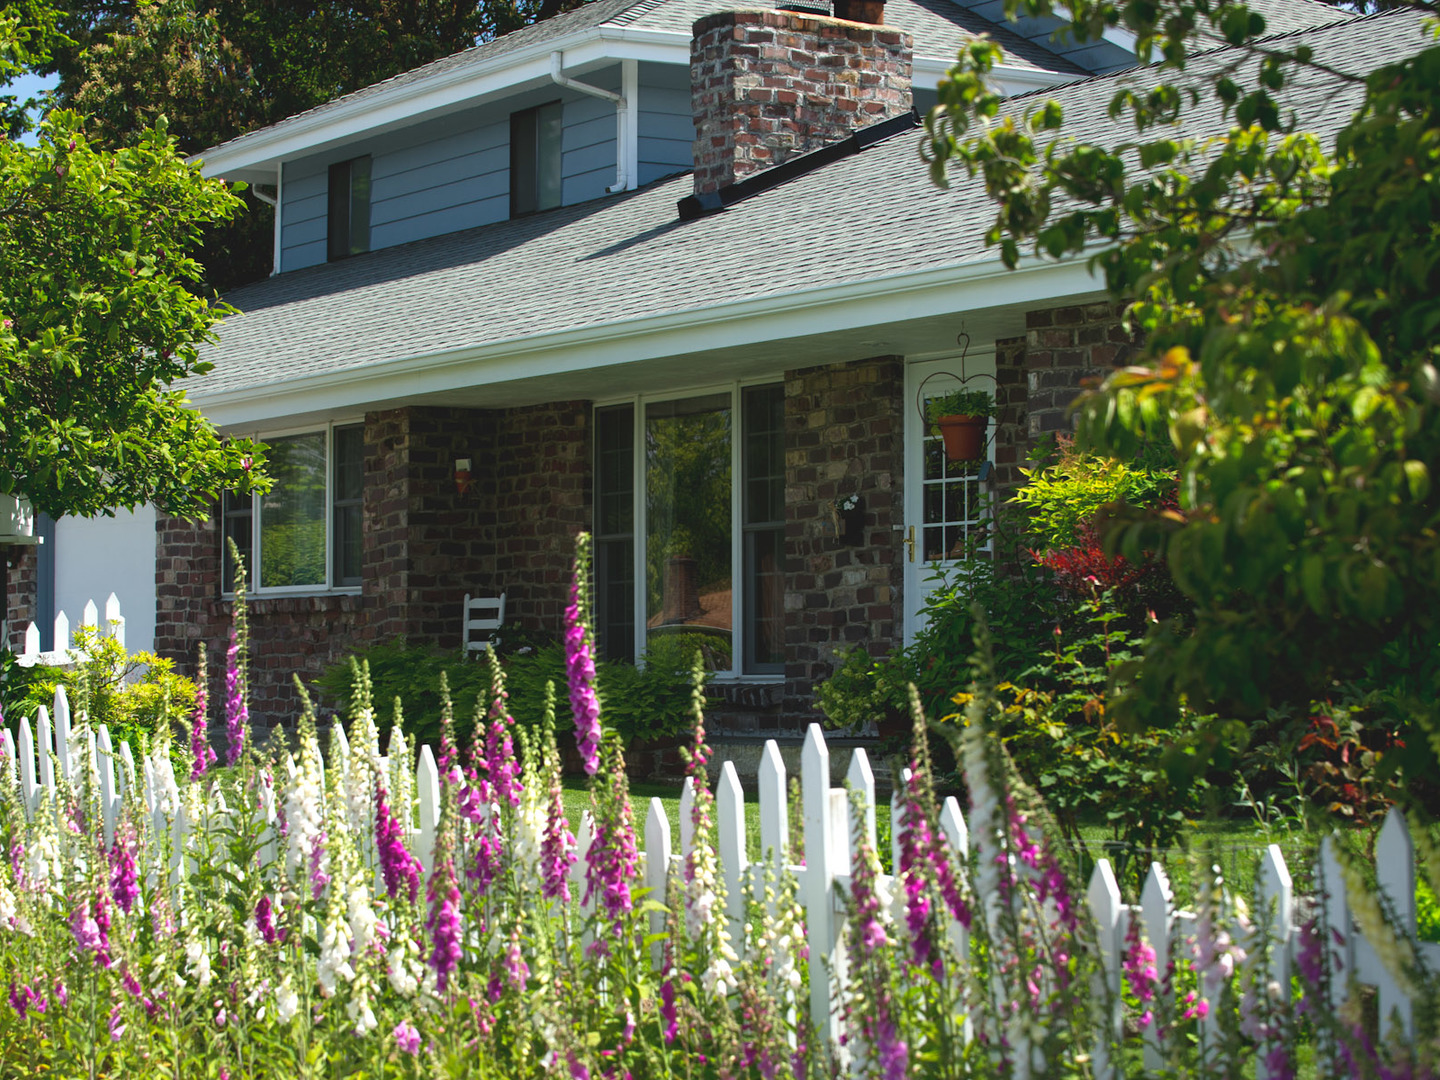 A colorful flower garden in front of a building at The Guest House Bed & Breakfast.